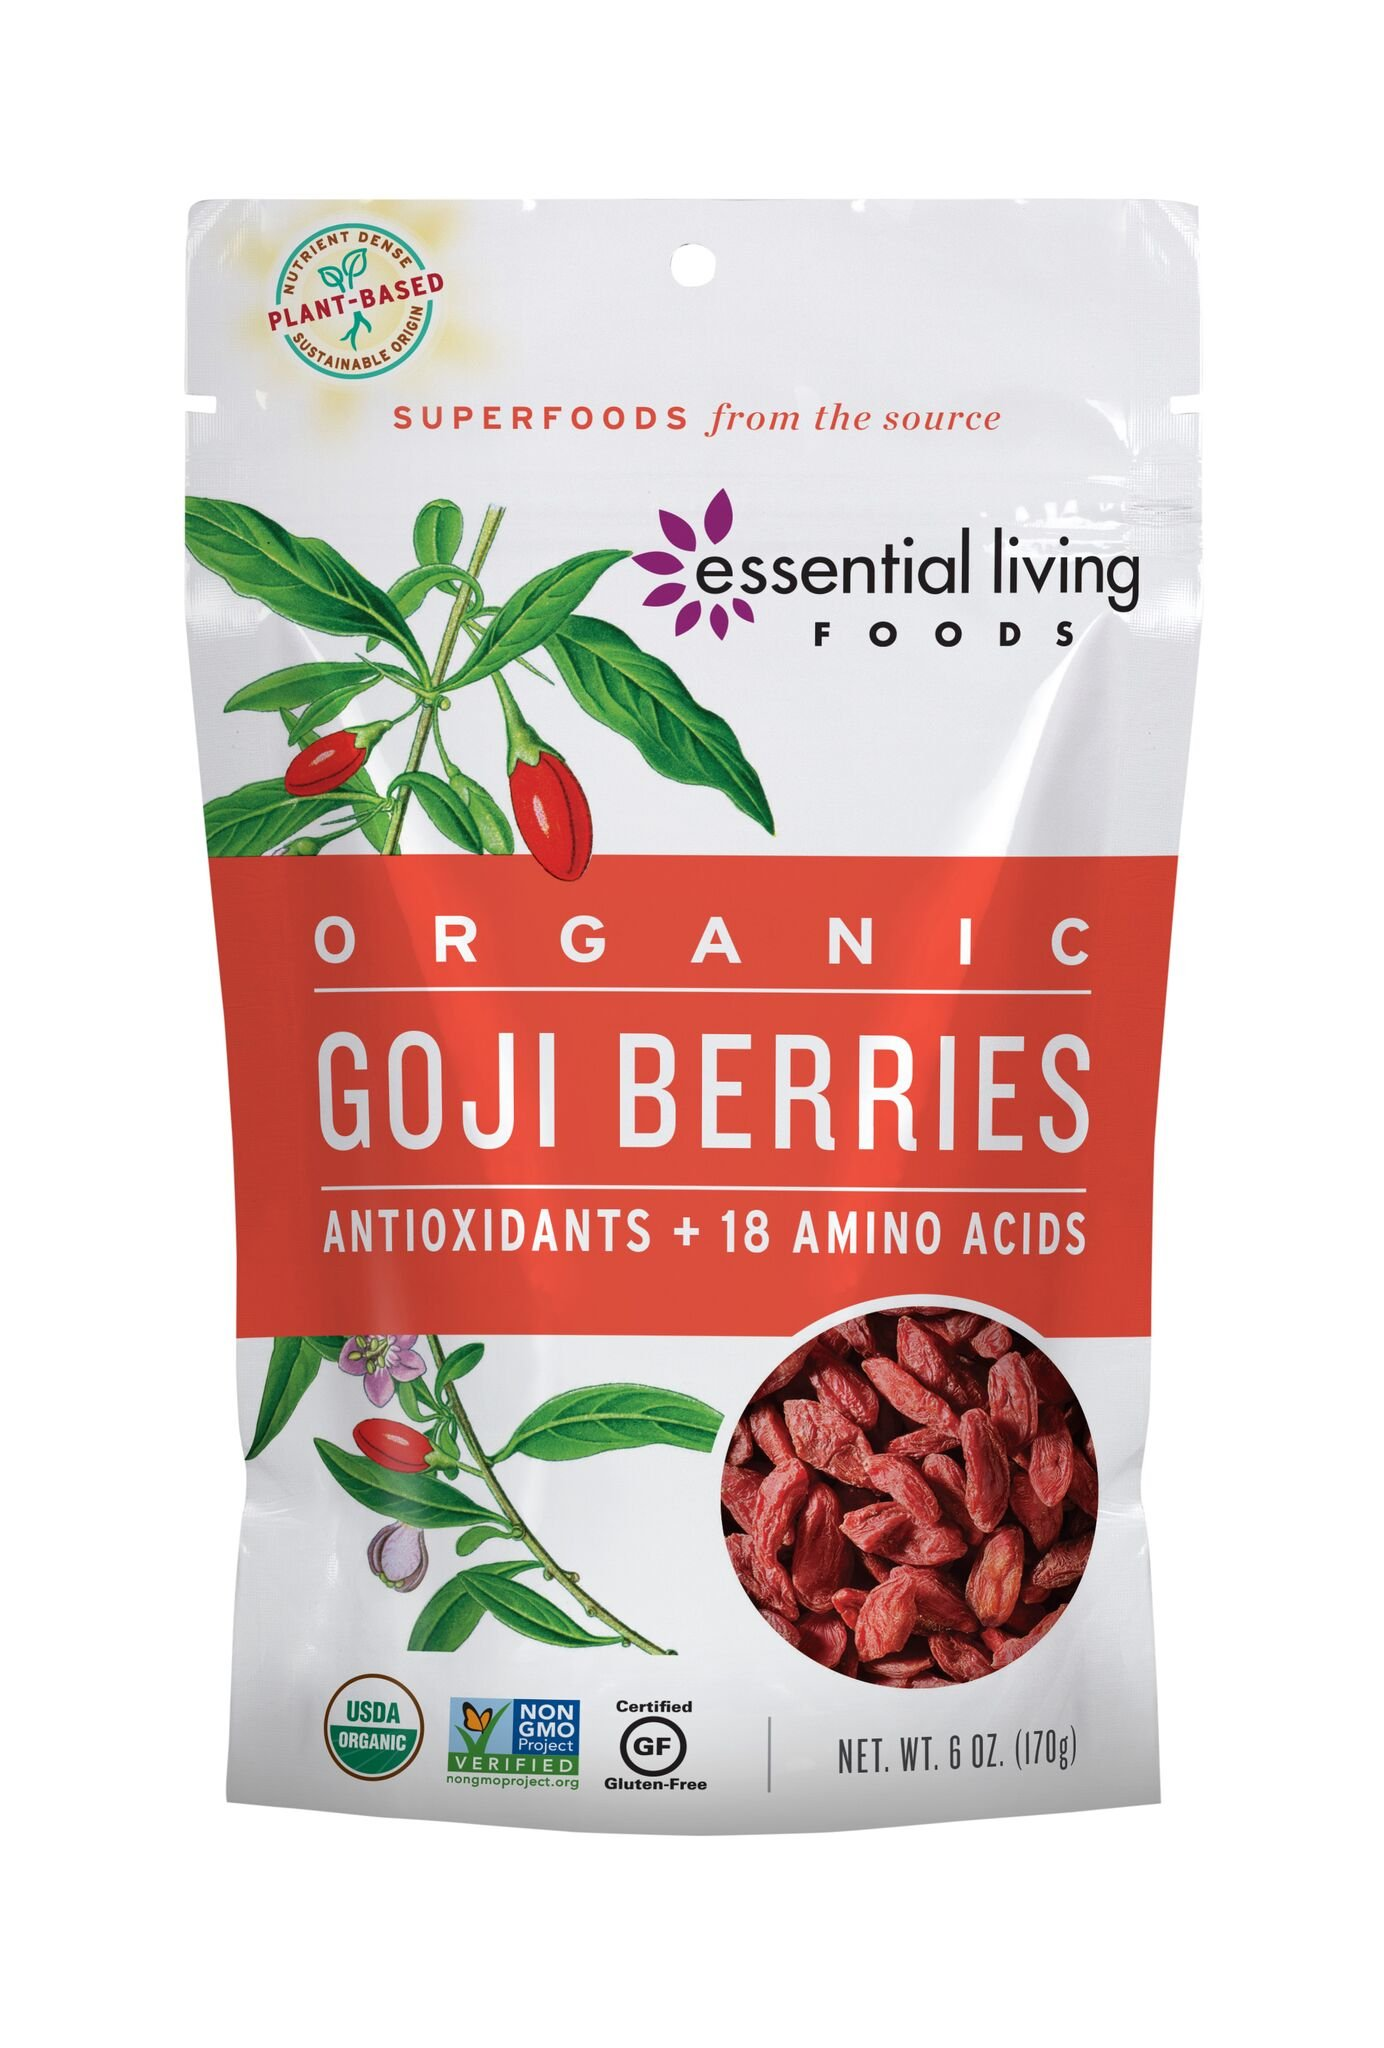 Essential Living Foods Organic Goji Berries, Dried, Highest Quality, Responsibly Grown Wolfberry, Vegan, Superfood, Non-GMO, Gluten Free, Kosher, 6 Ounce Resealable Bag